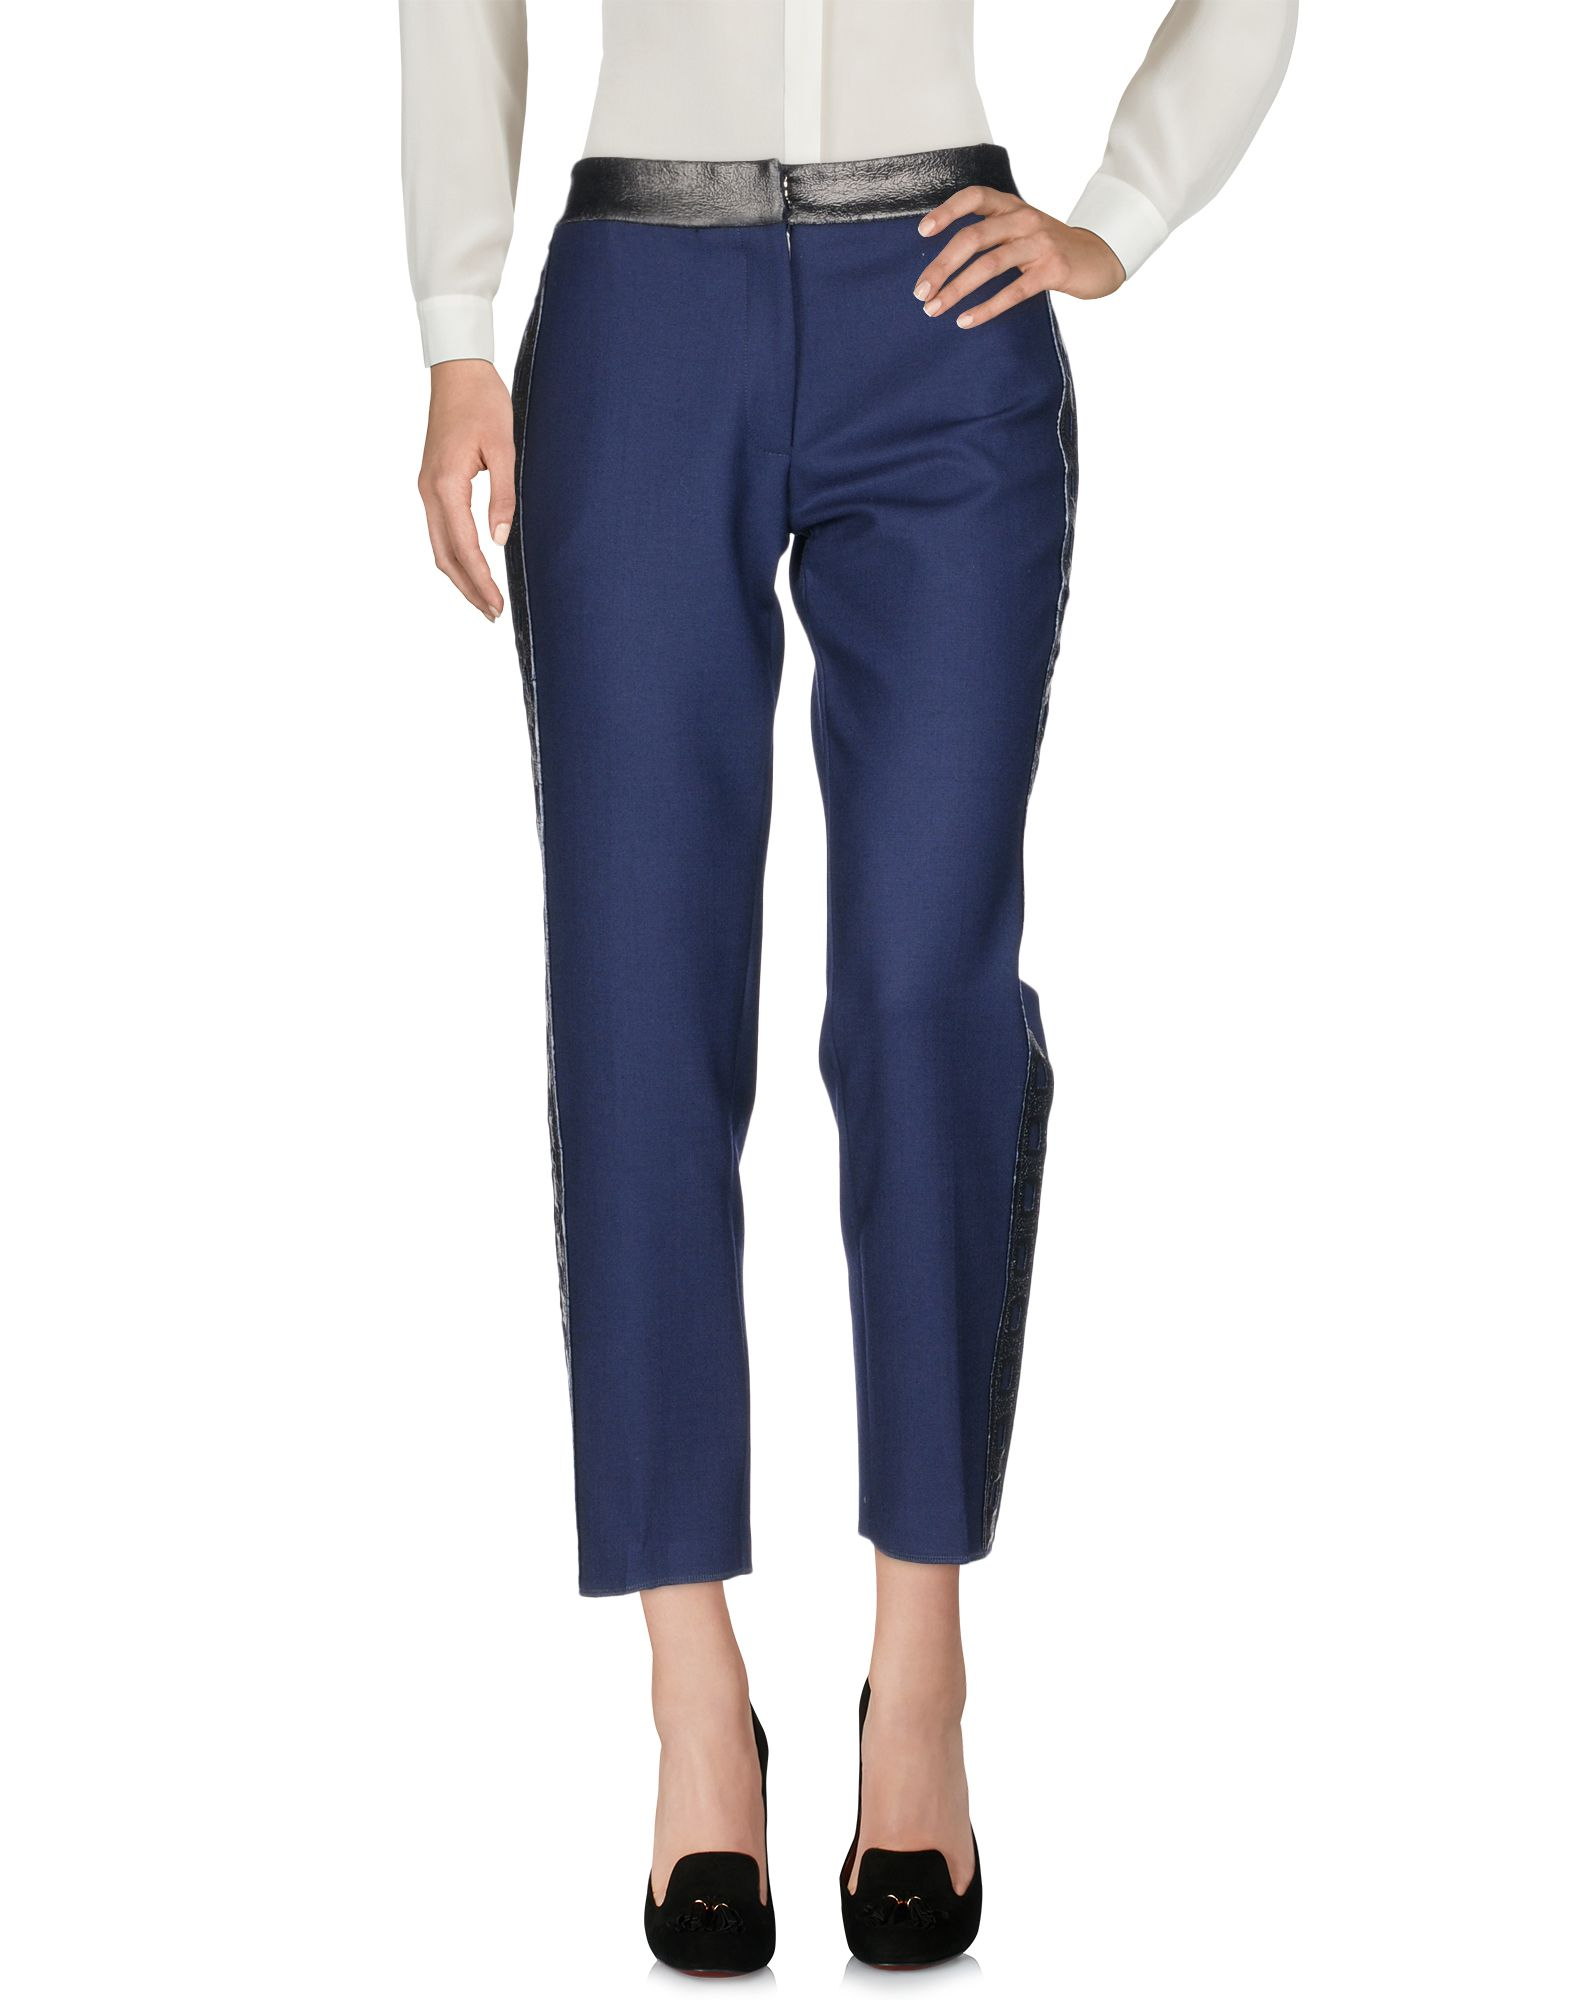 TEATUM JONES Casual Pants in Dark Blue